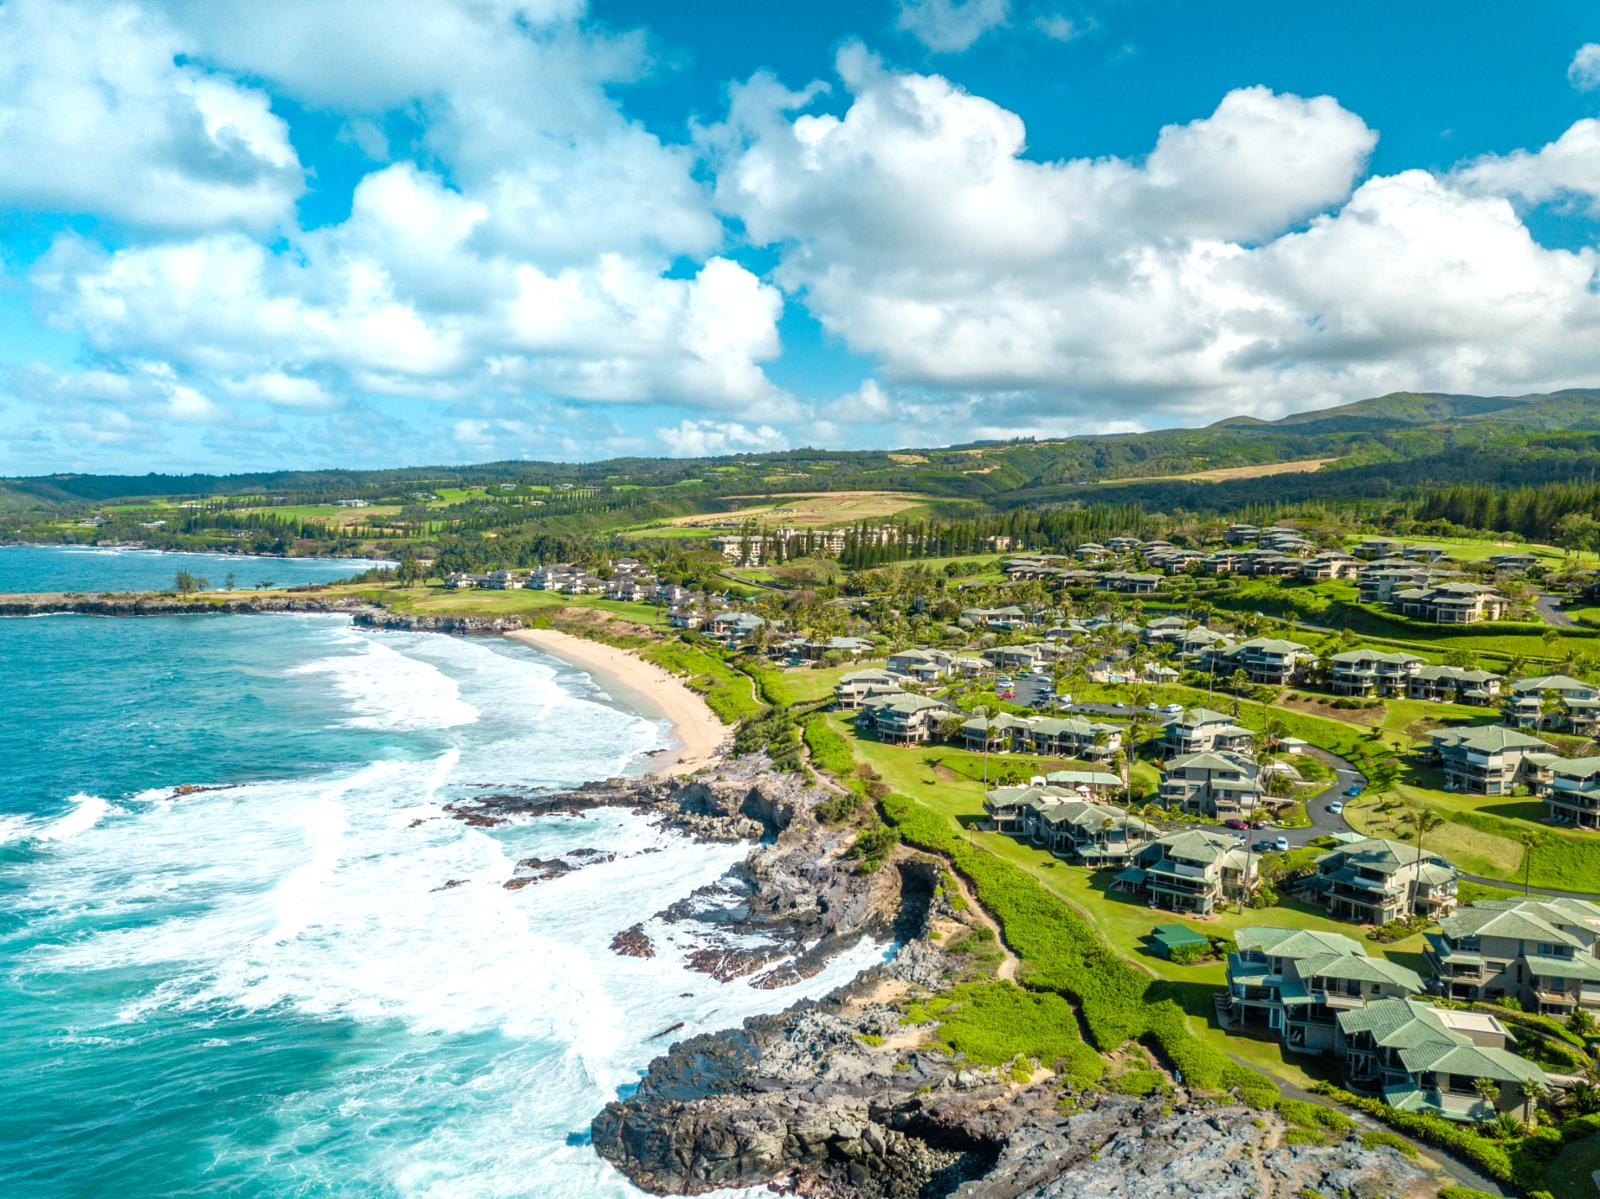 Come experience this stunning beach and golf resort in Kapalua